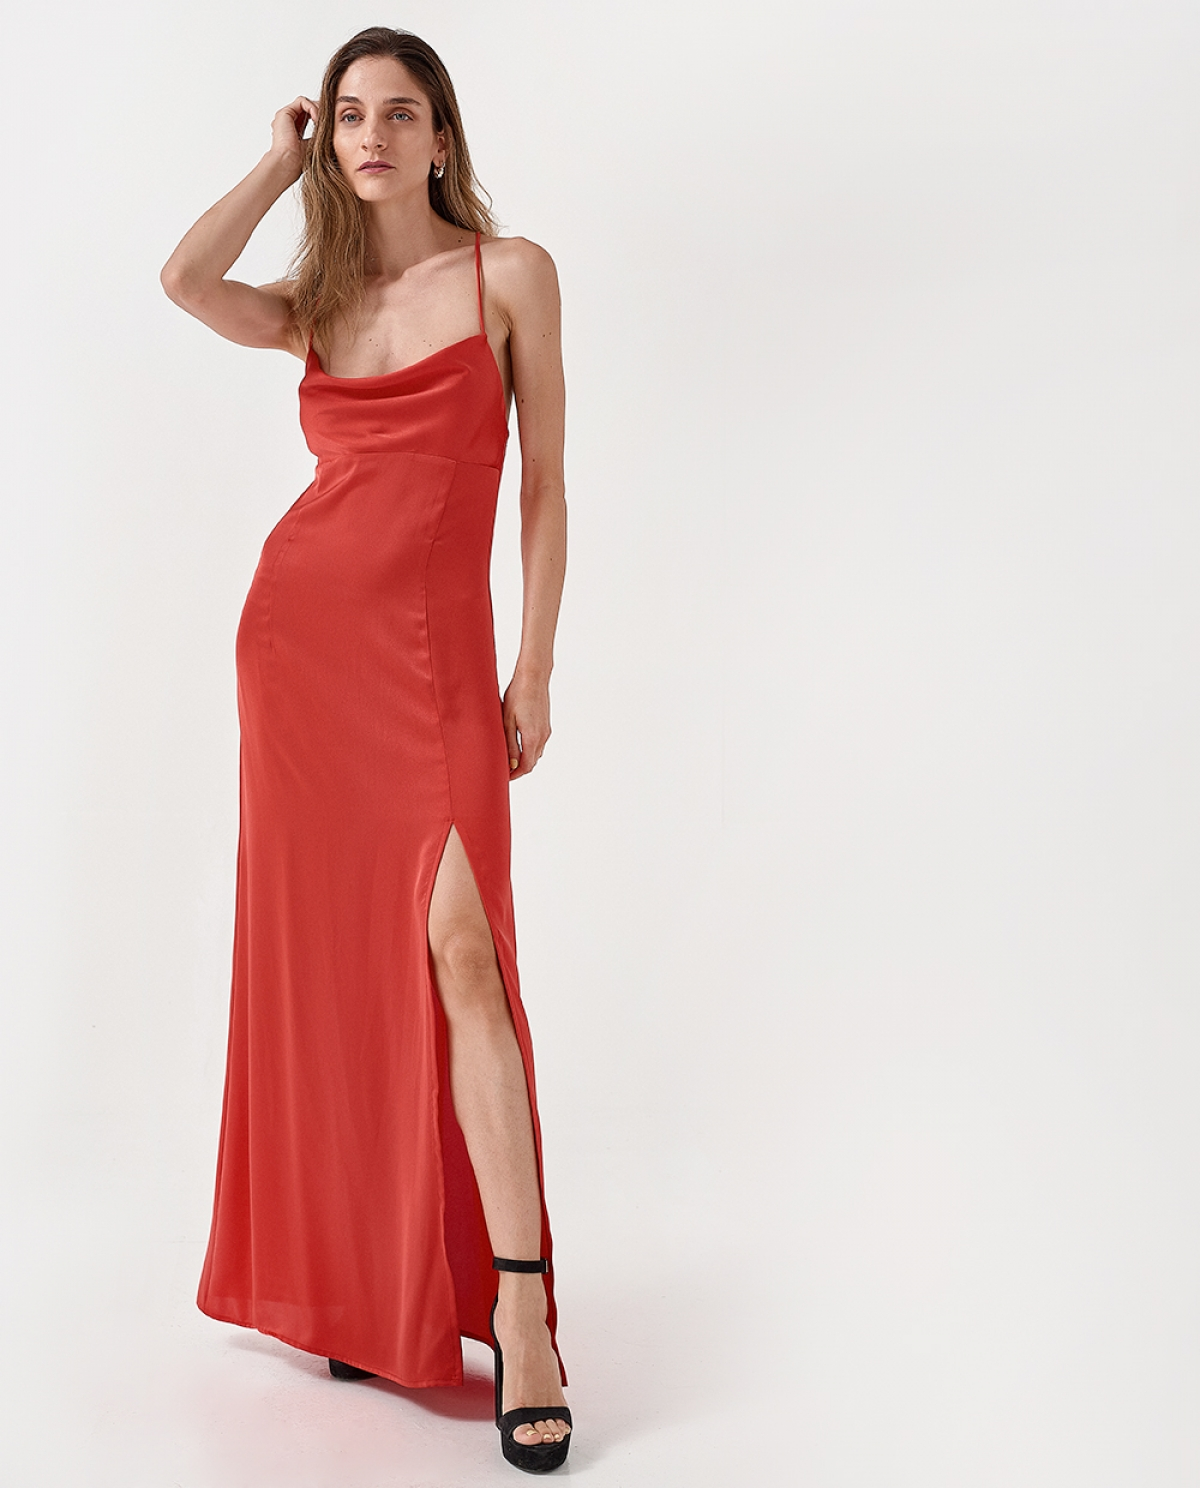 Inya Red Slip Dress